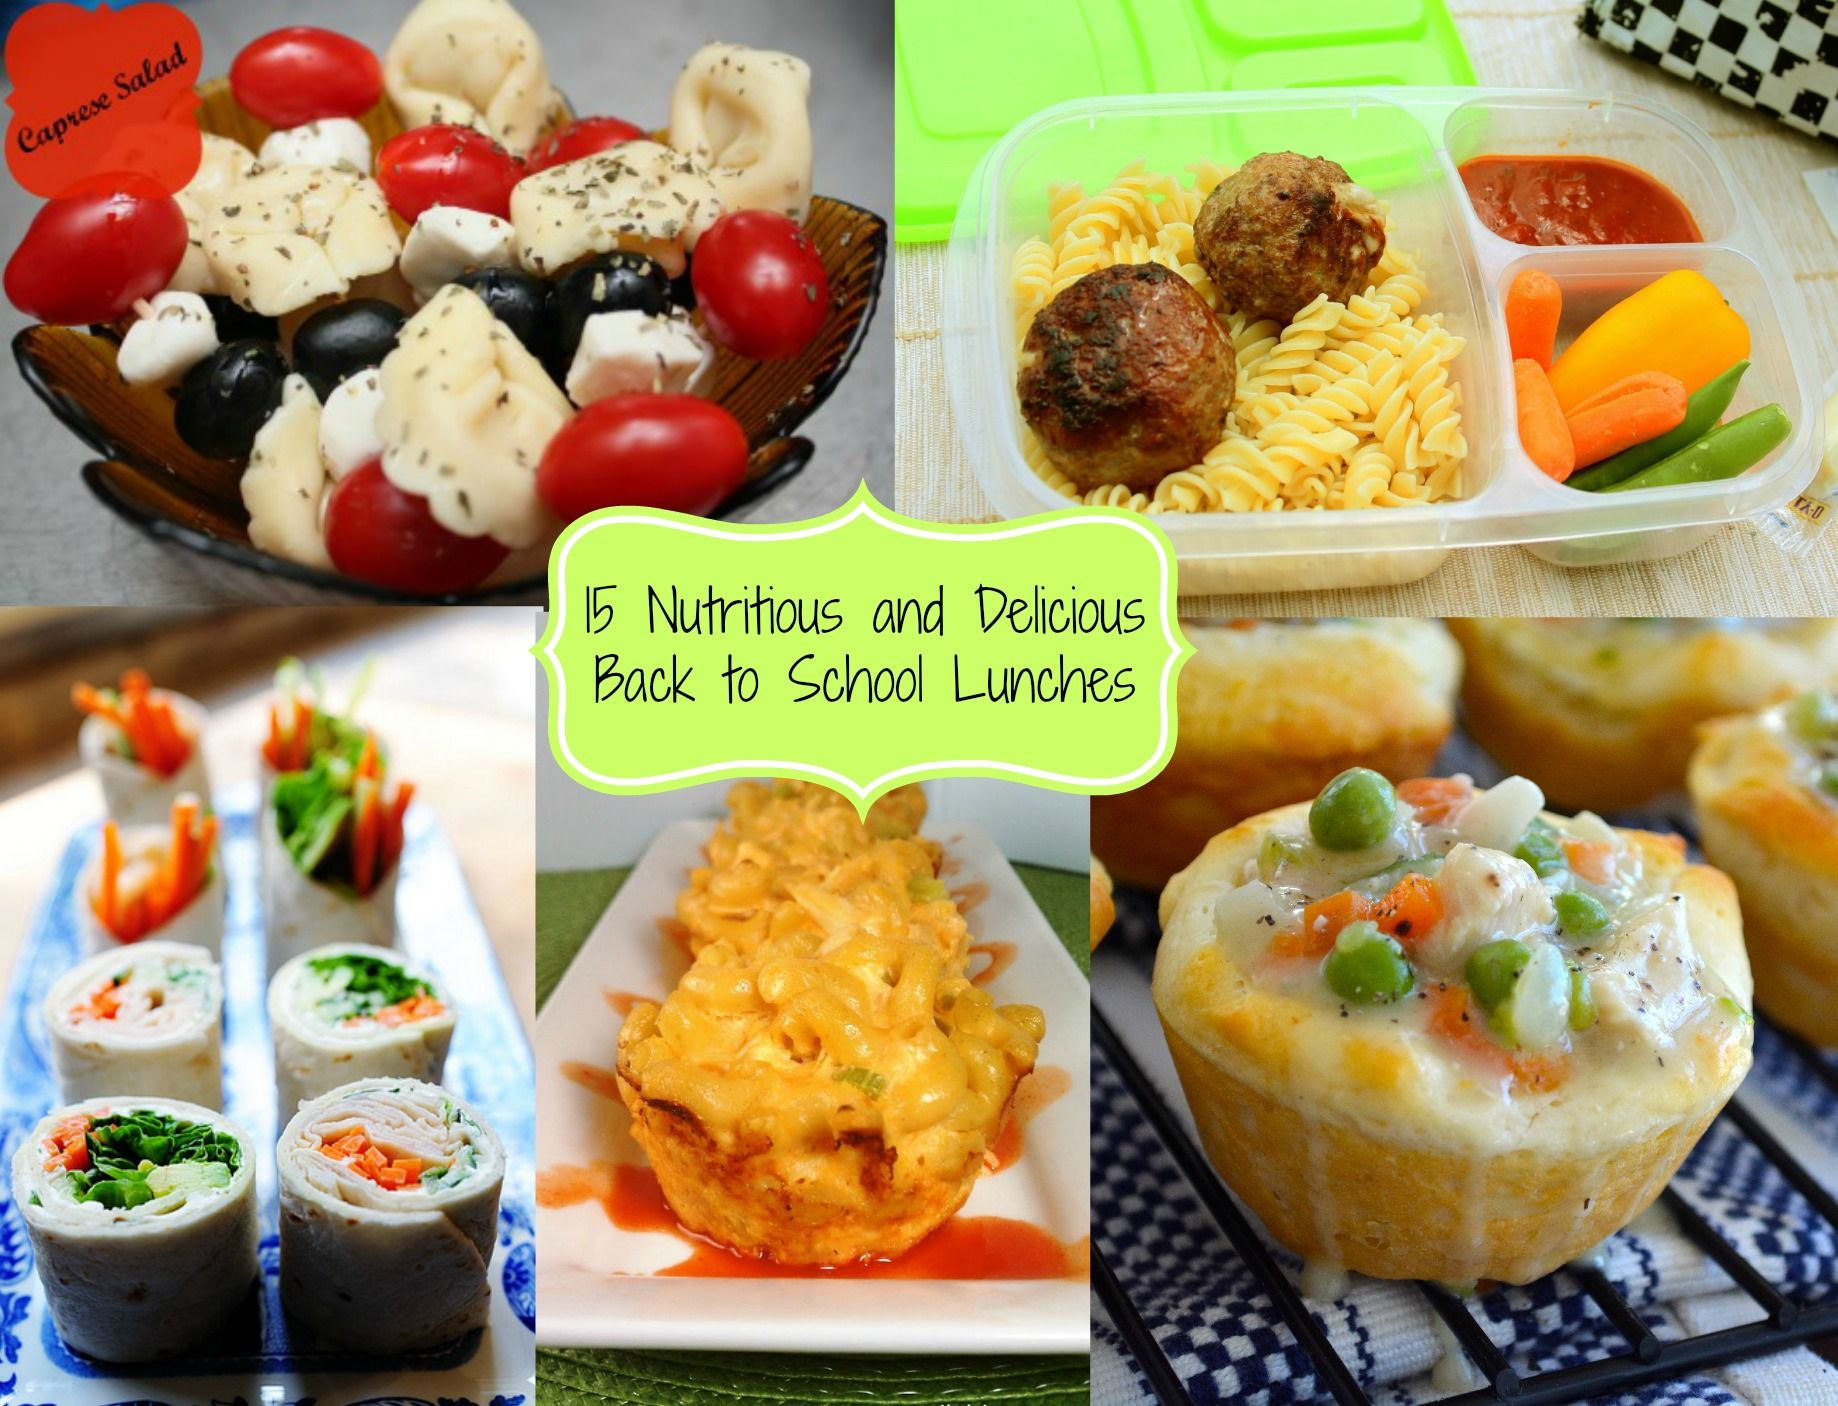 15 Nutritious and Delicious Back to School Lunches